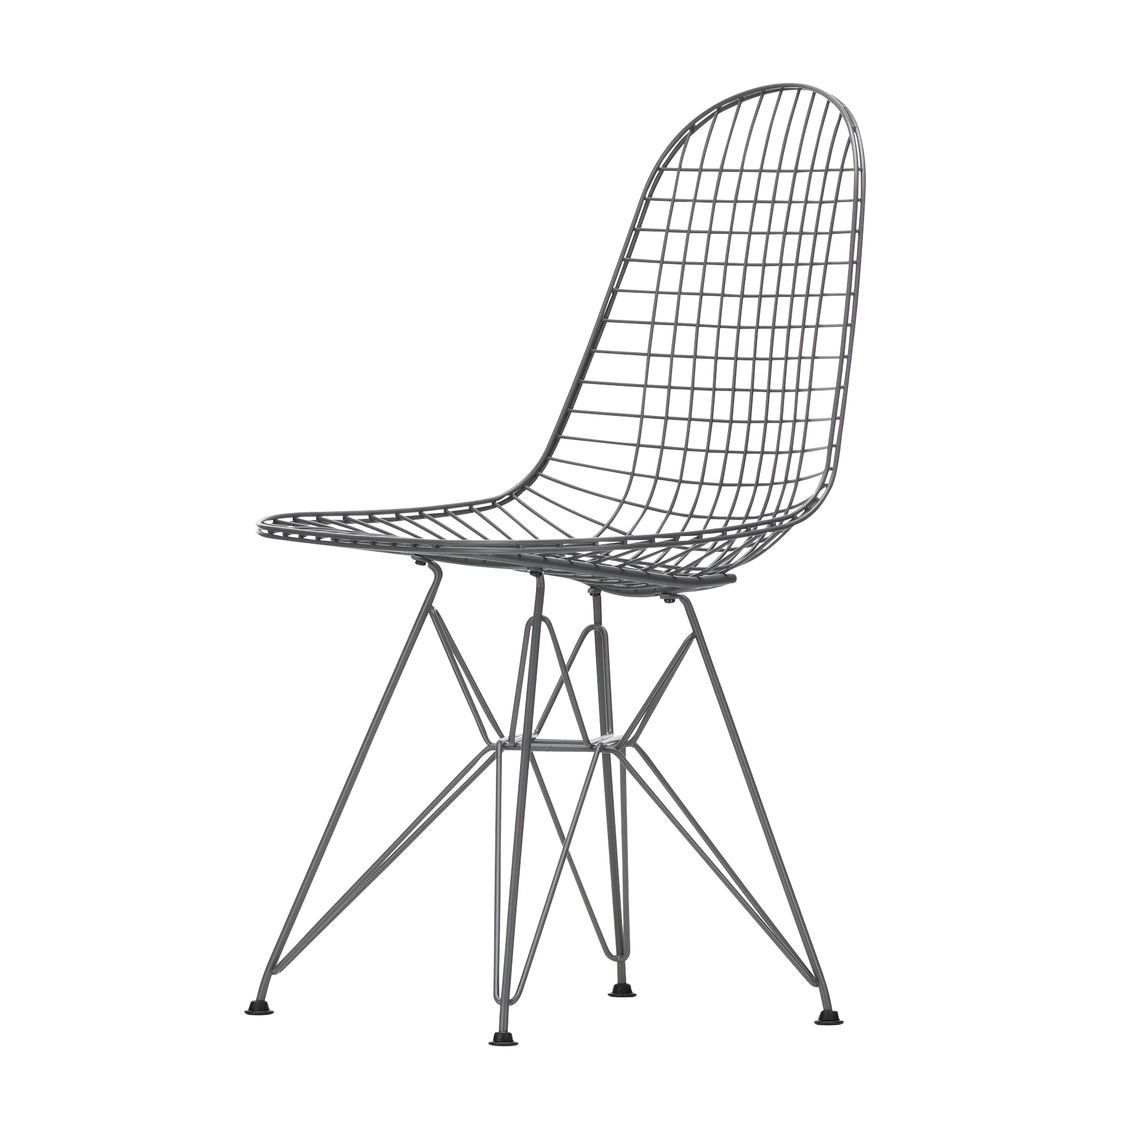 Eames Stühle Replica Vitra Eames Stuhl Eames Pyramid Chair Replica Eames Wire Chair